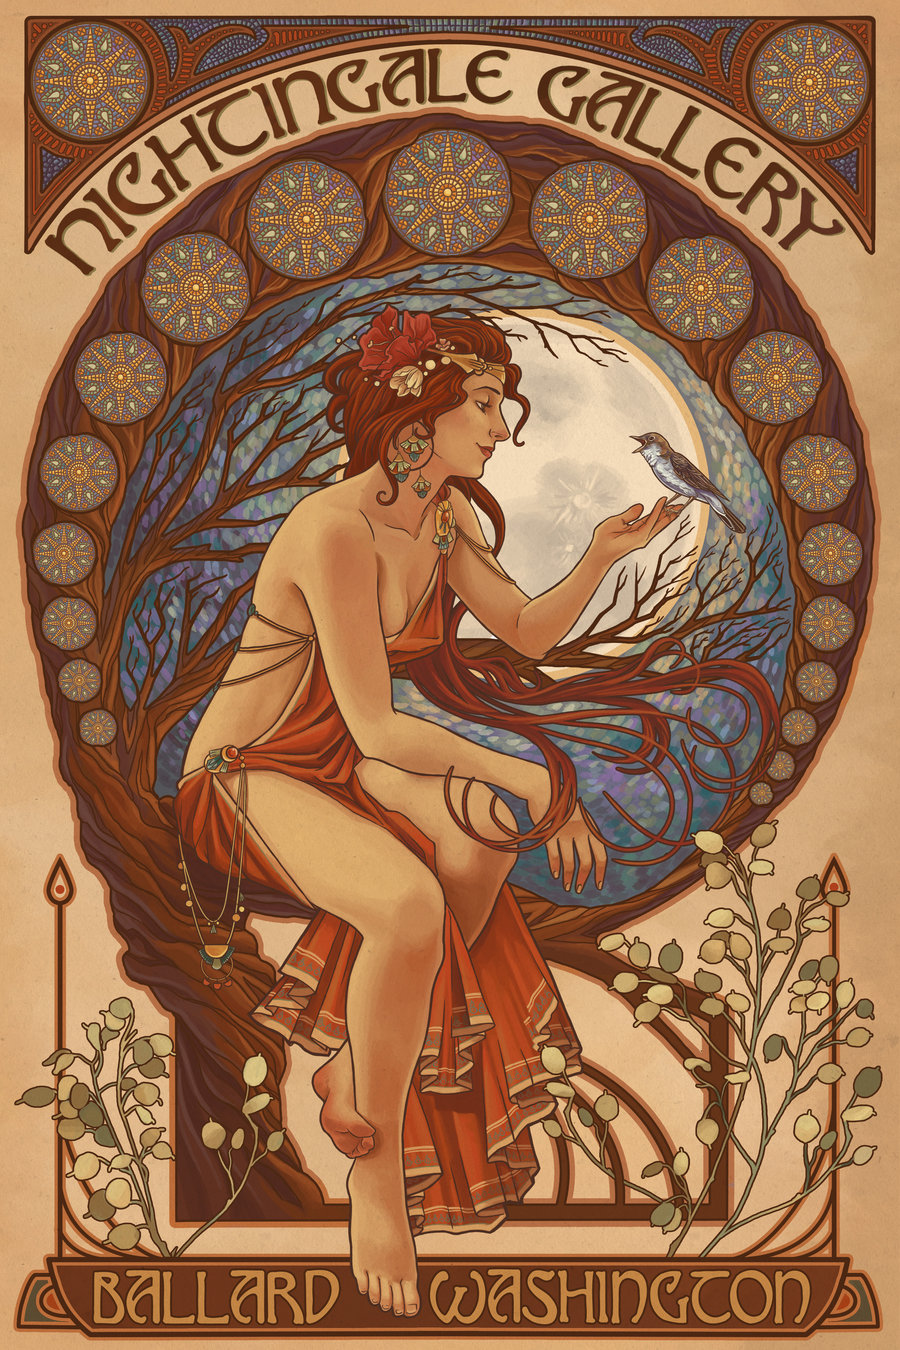 nightingale gallery poster by chronoperates art nouveau